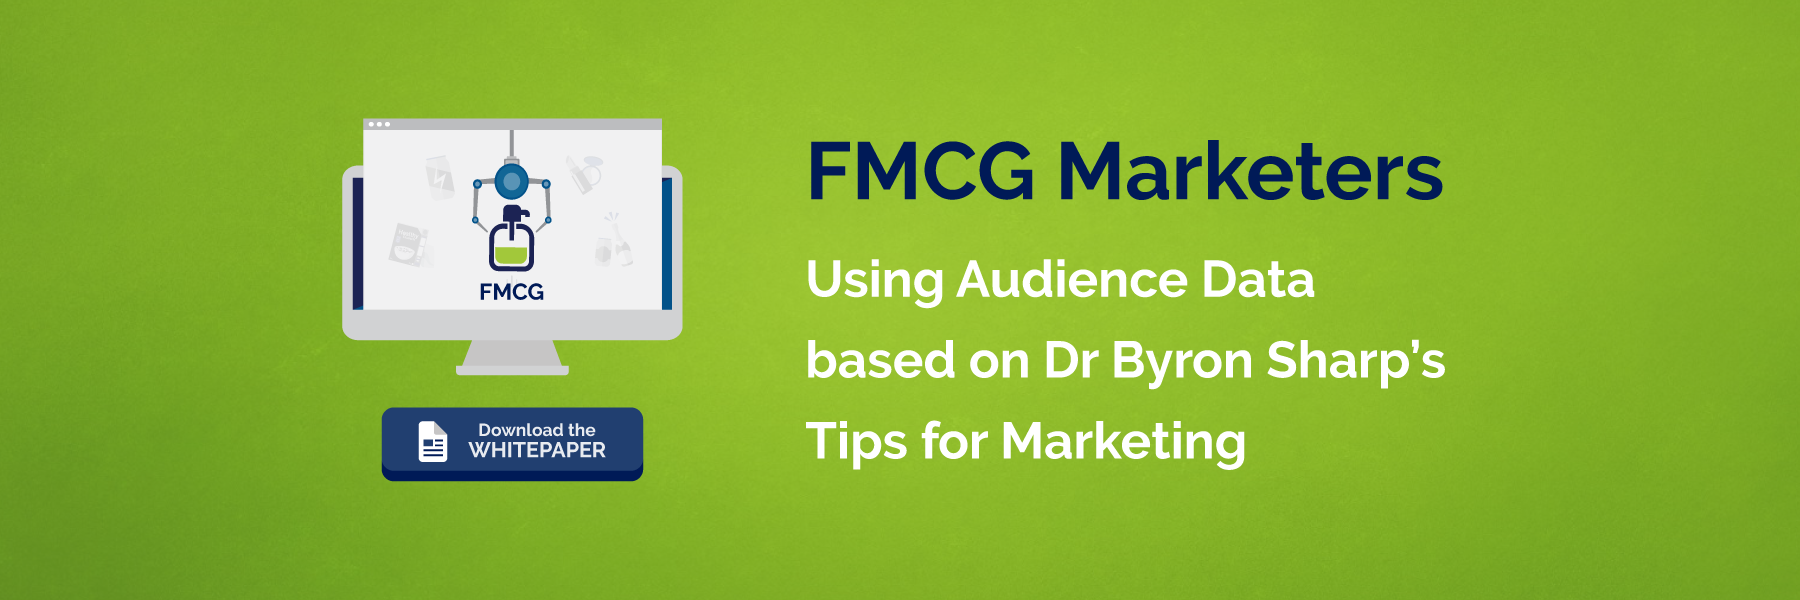 FMCG White Paper   FMCG Online campaign.png